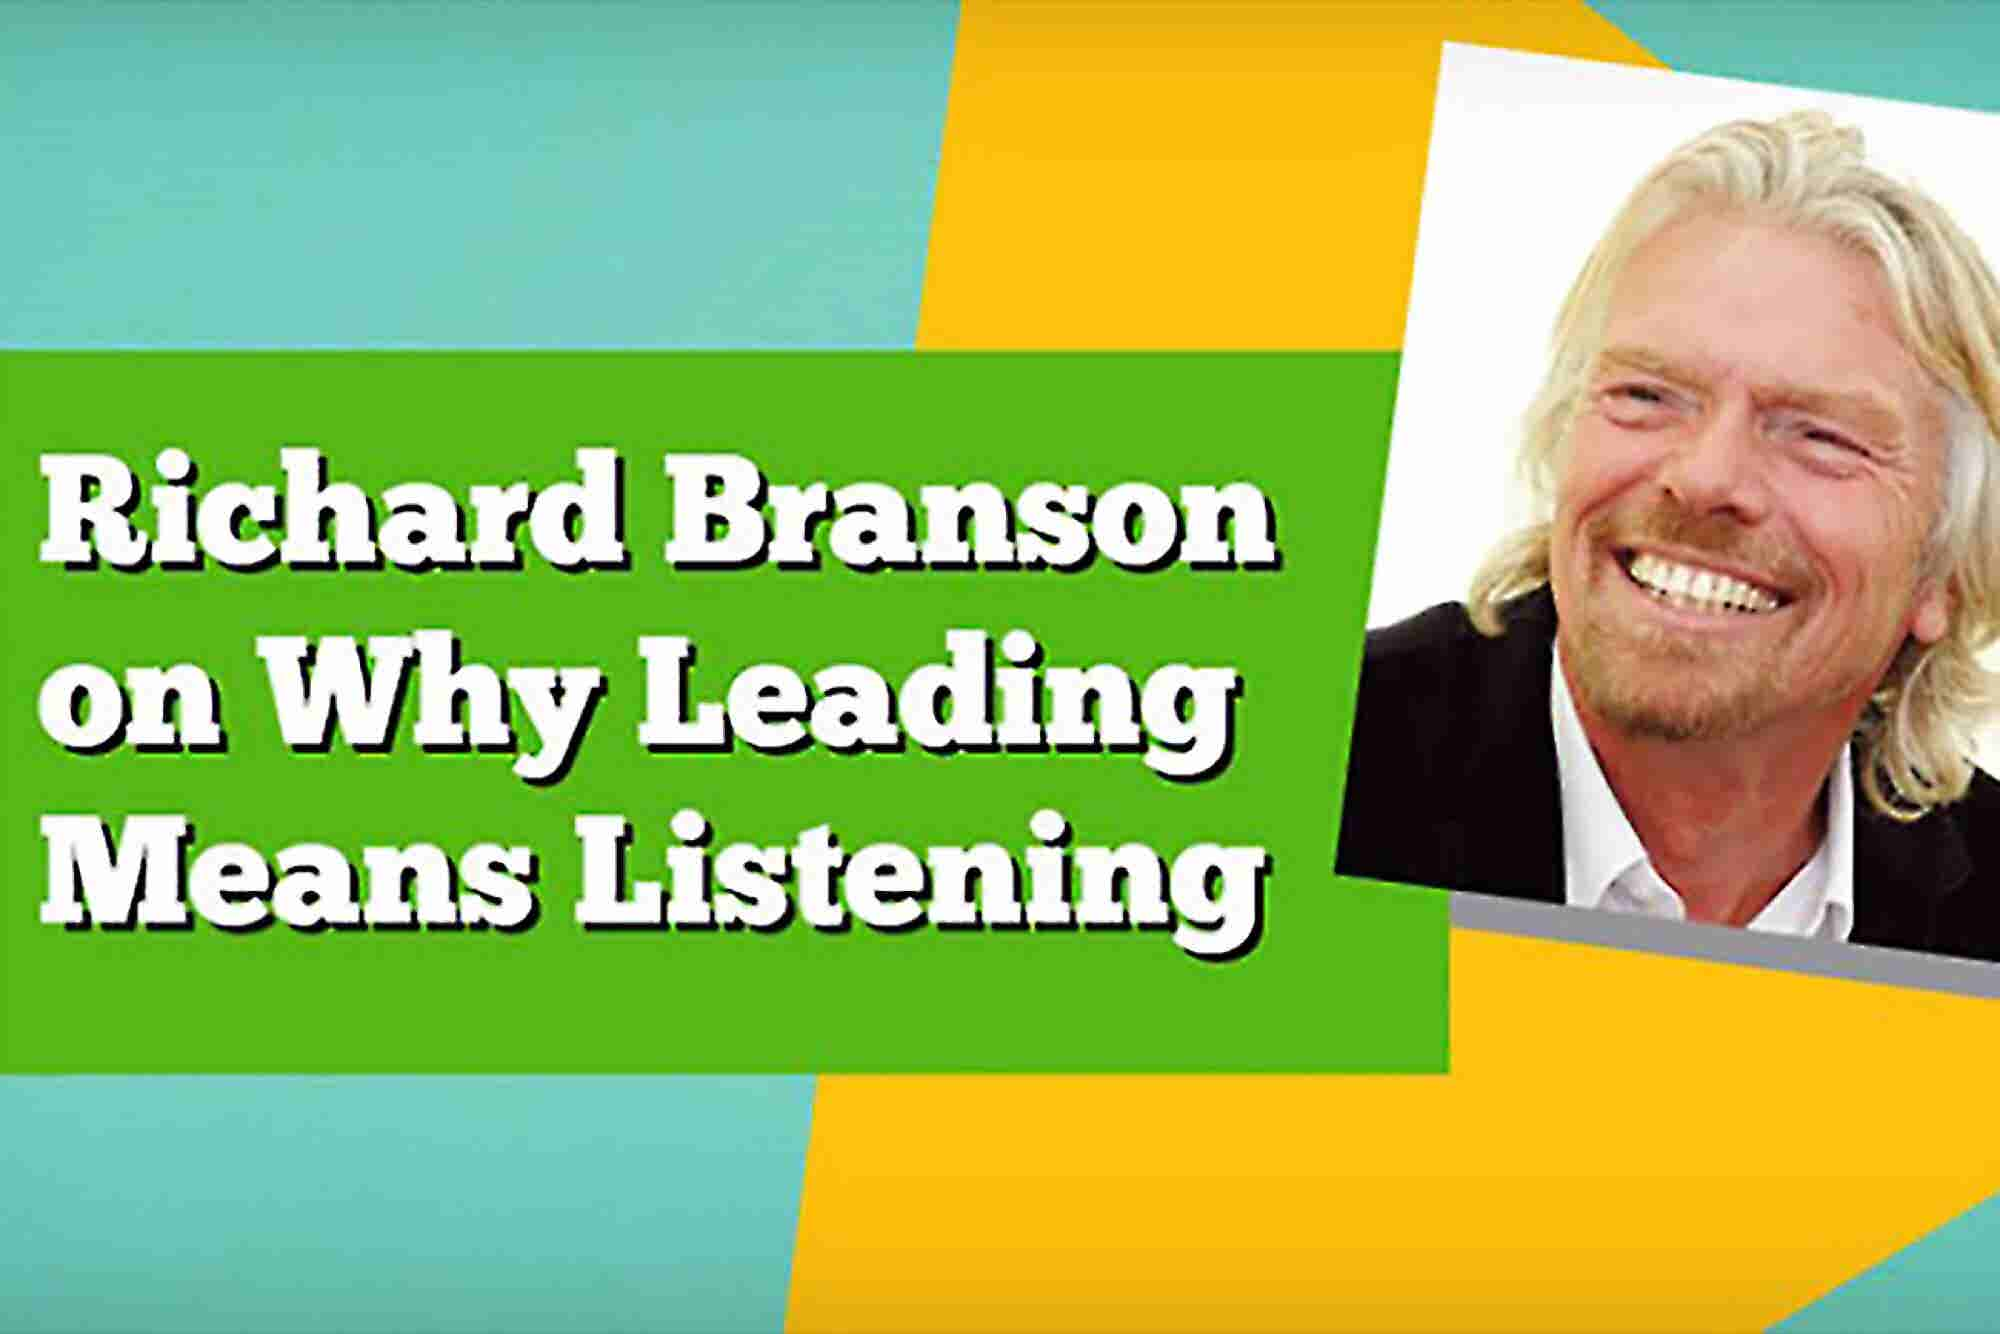 Richard Branson: Strong Leaders Are Good Listeners